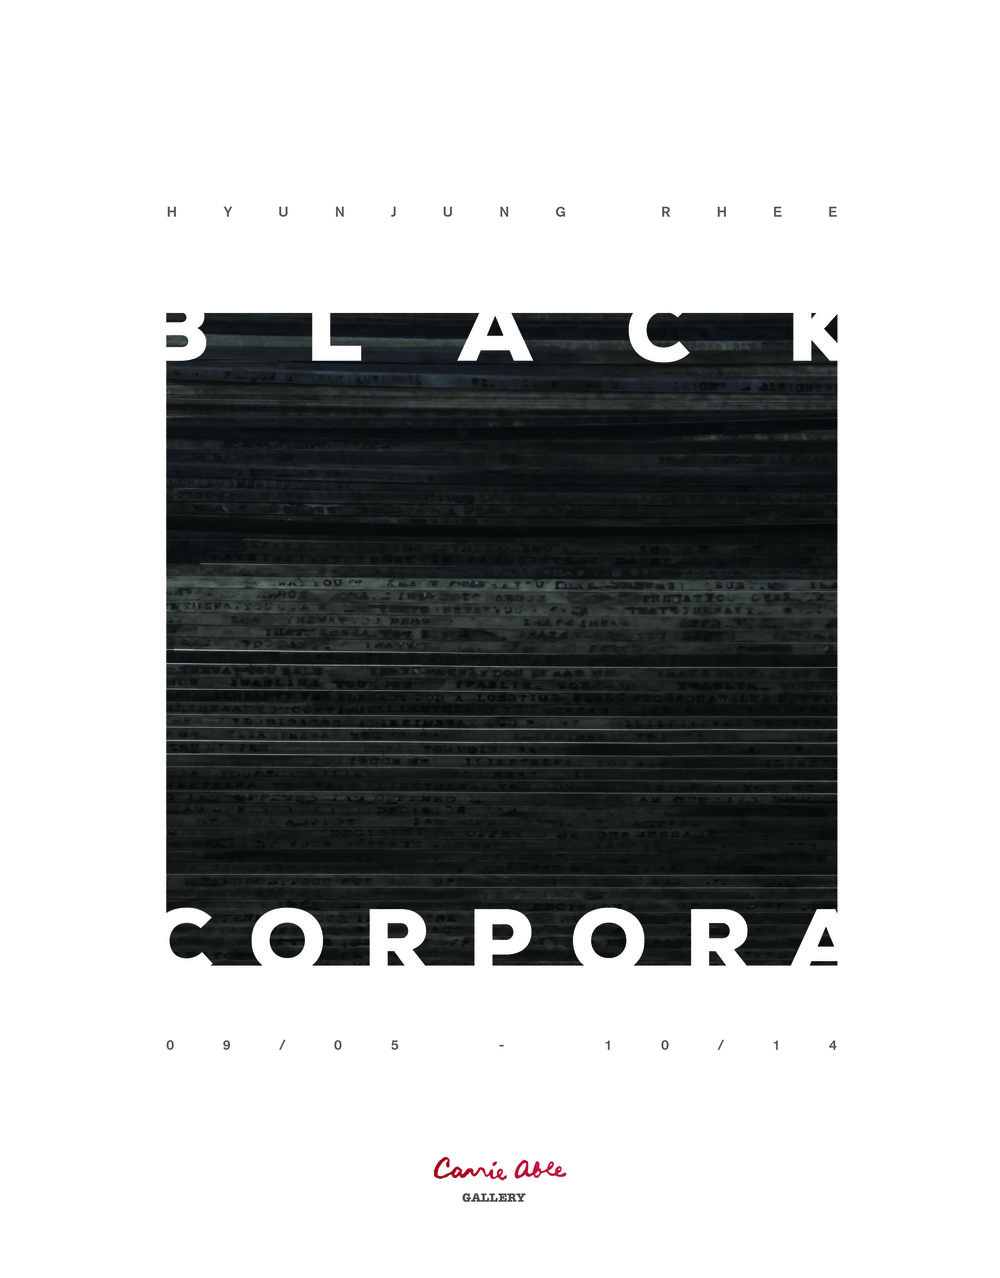 Catalogue Black Corpora.jpg